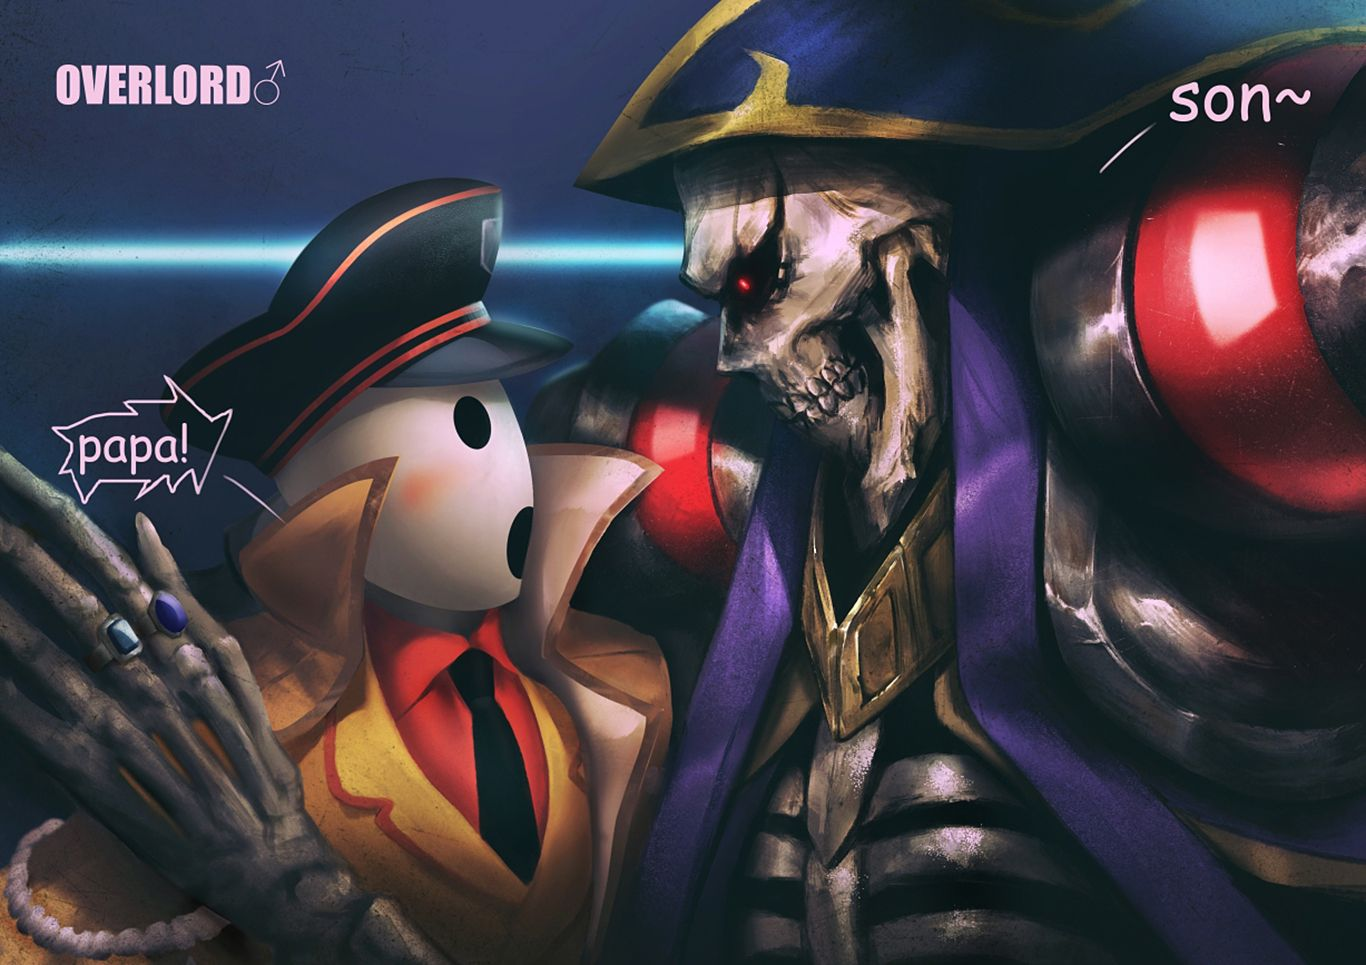 Ainz Ooal Gown And Pandora S Actor Computer Wallpapers Desktop Backgrounds 1366x965 Id 648891 Anime Anime Images Wallpaper Backgrounds